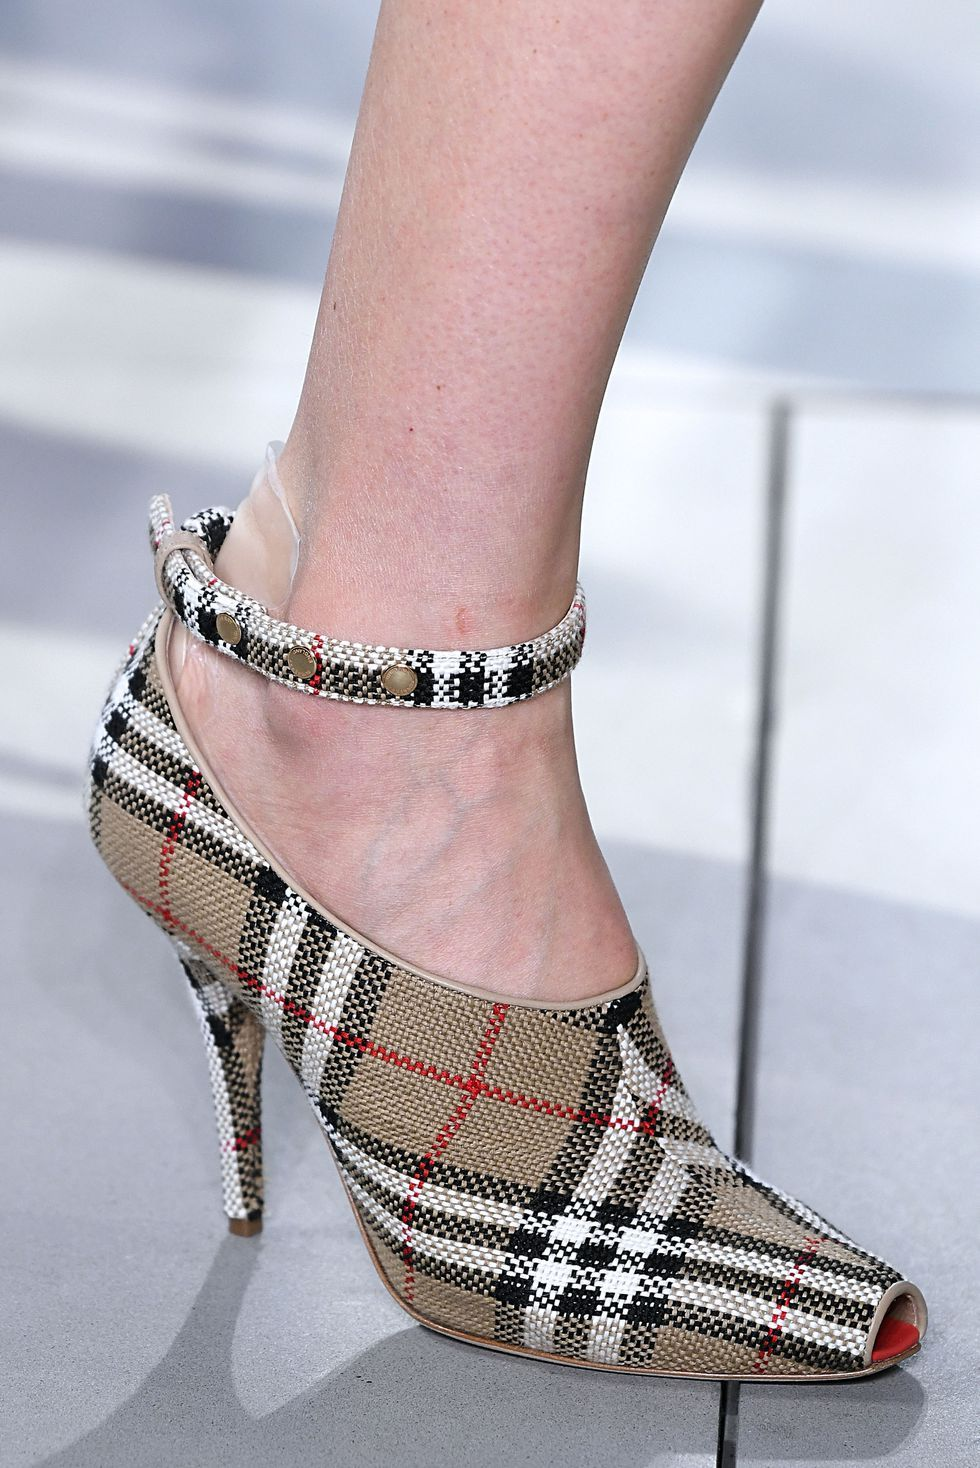 The Best Shoes from London Fashion Week https   www.pinterest.com c9836b4f8e7